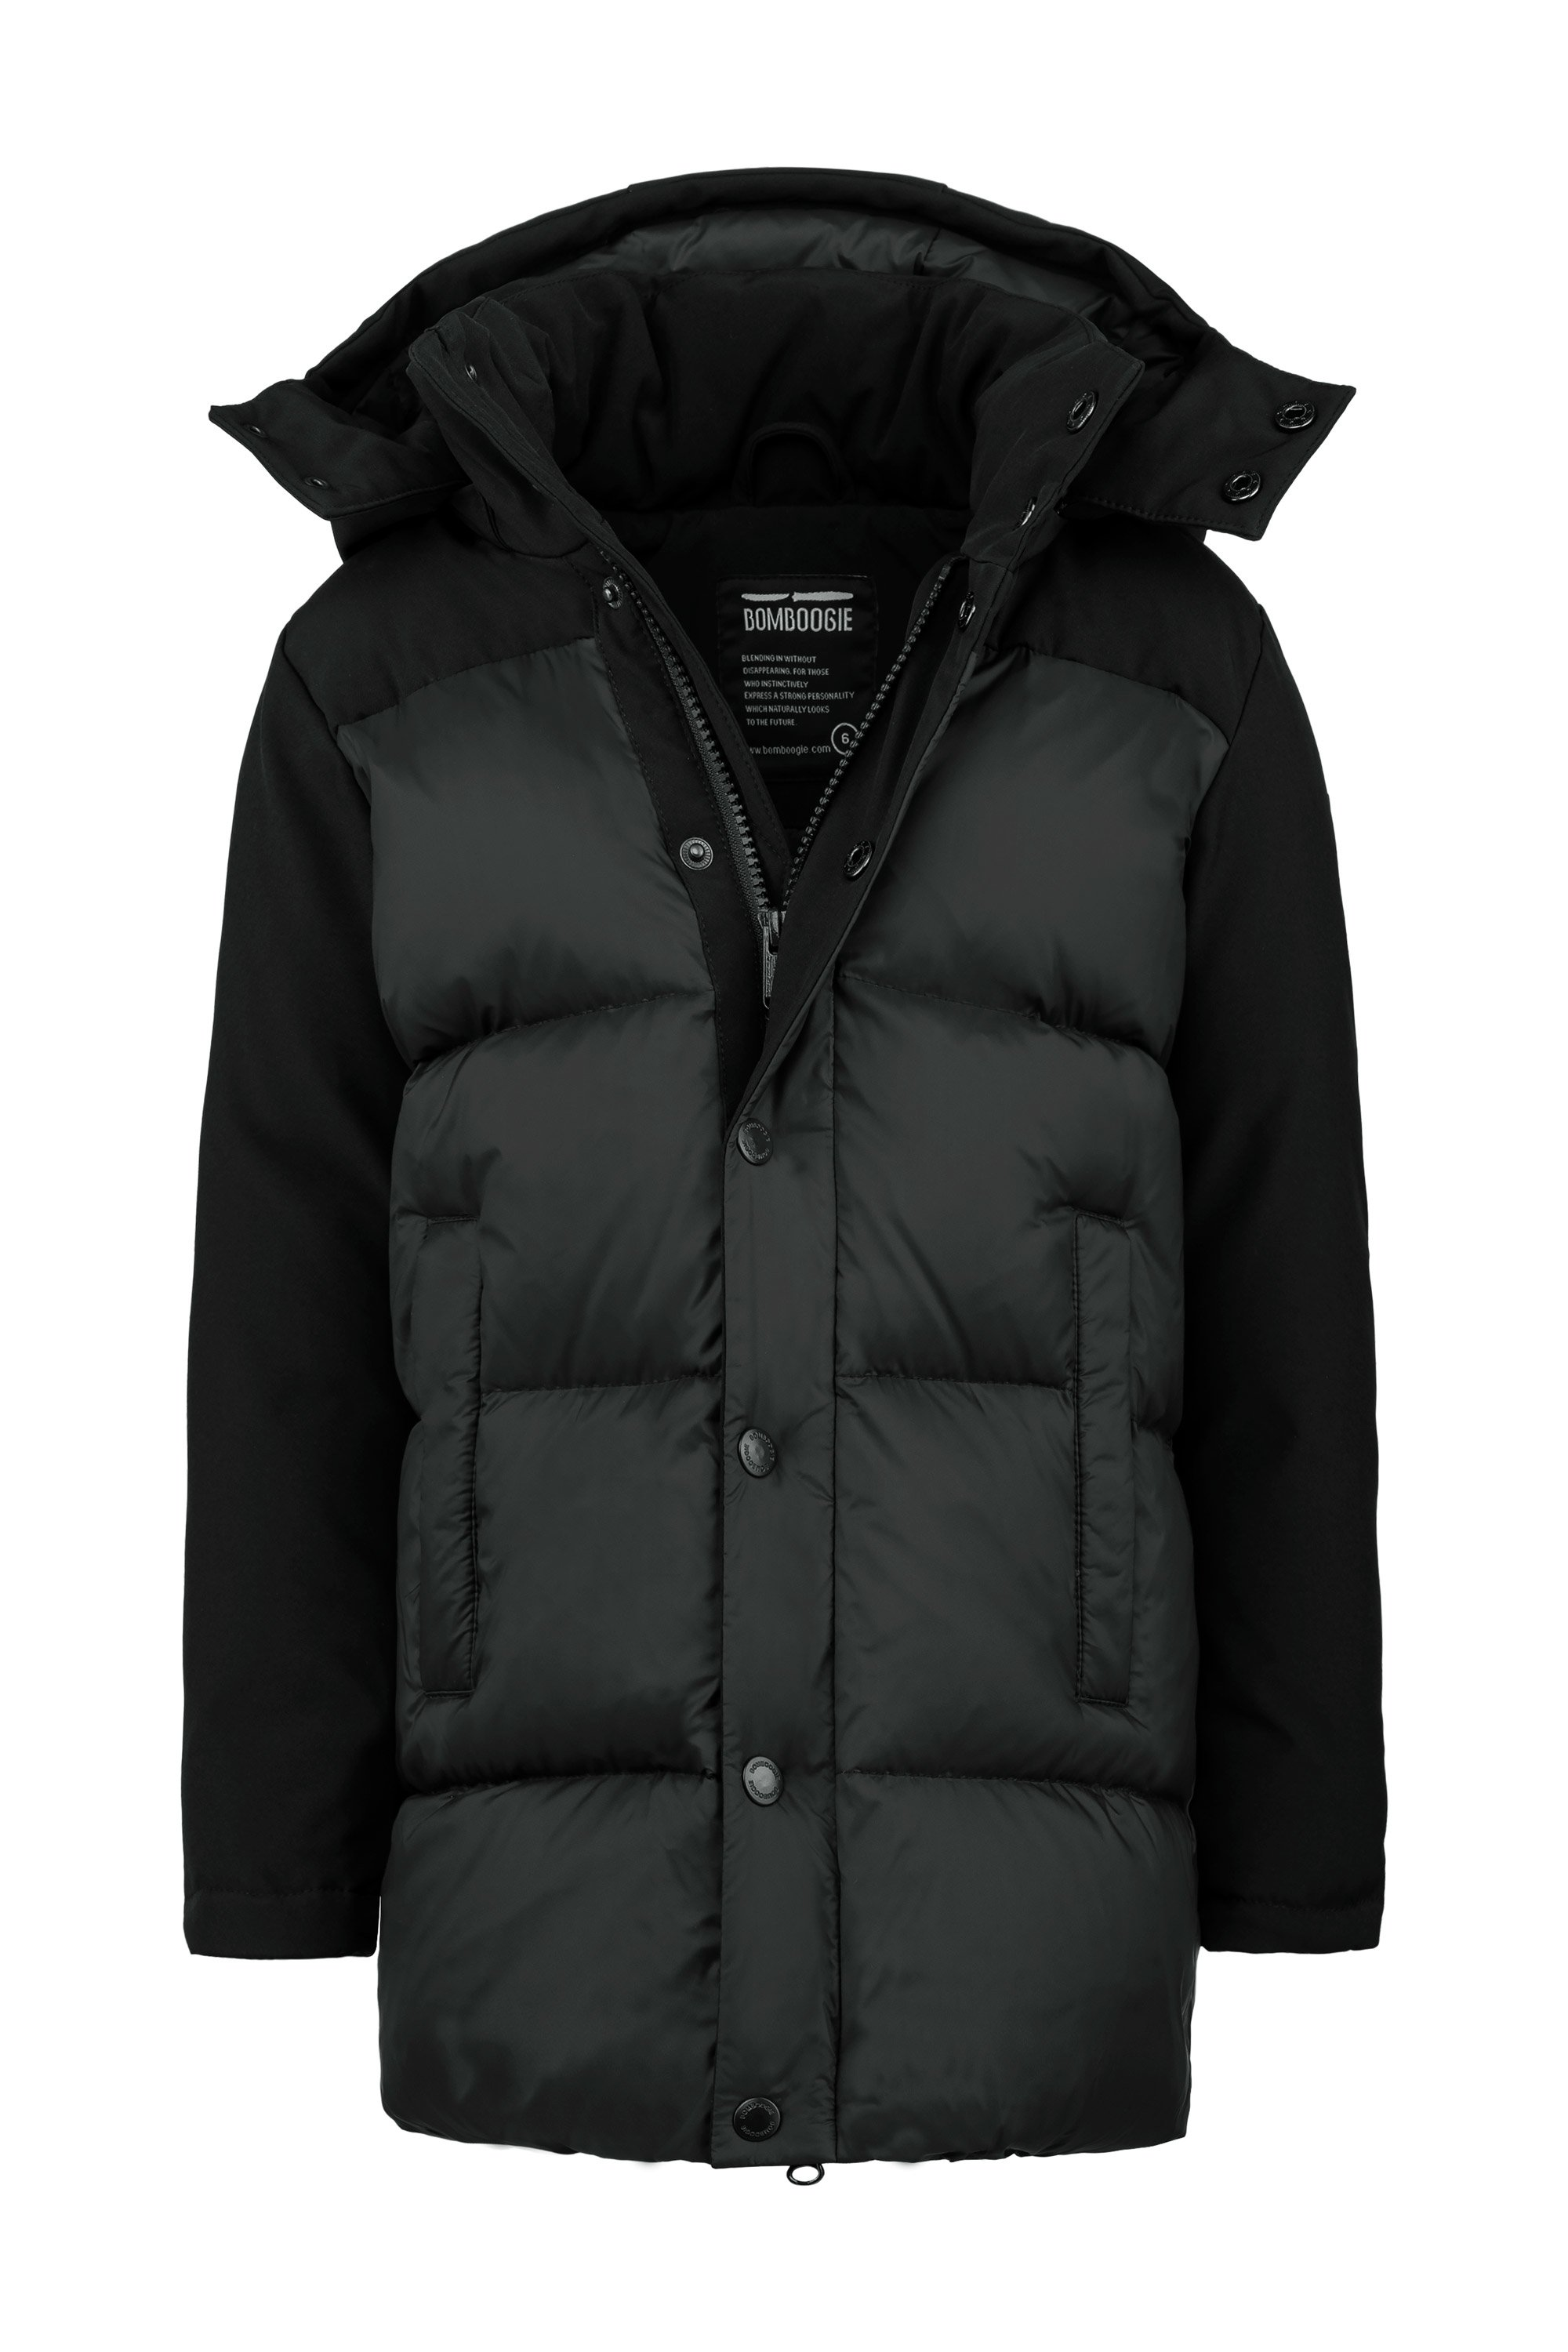 Bi material real down jacket